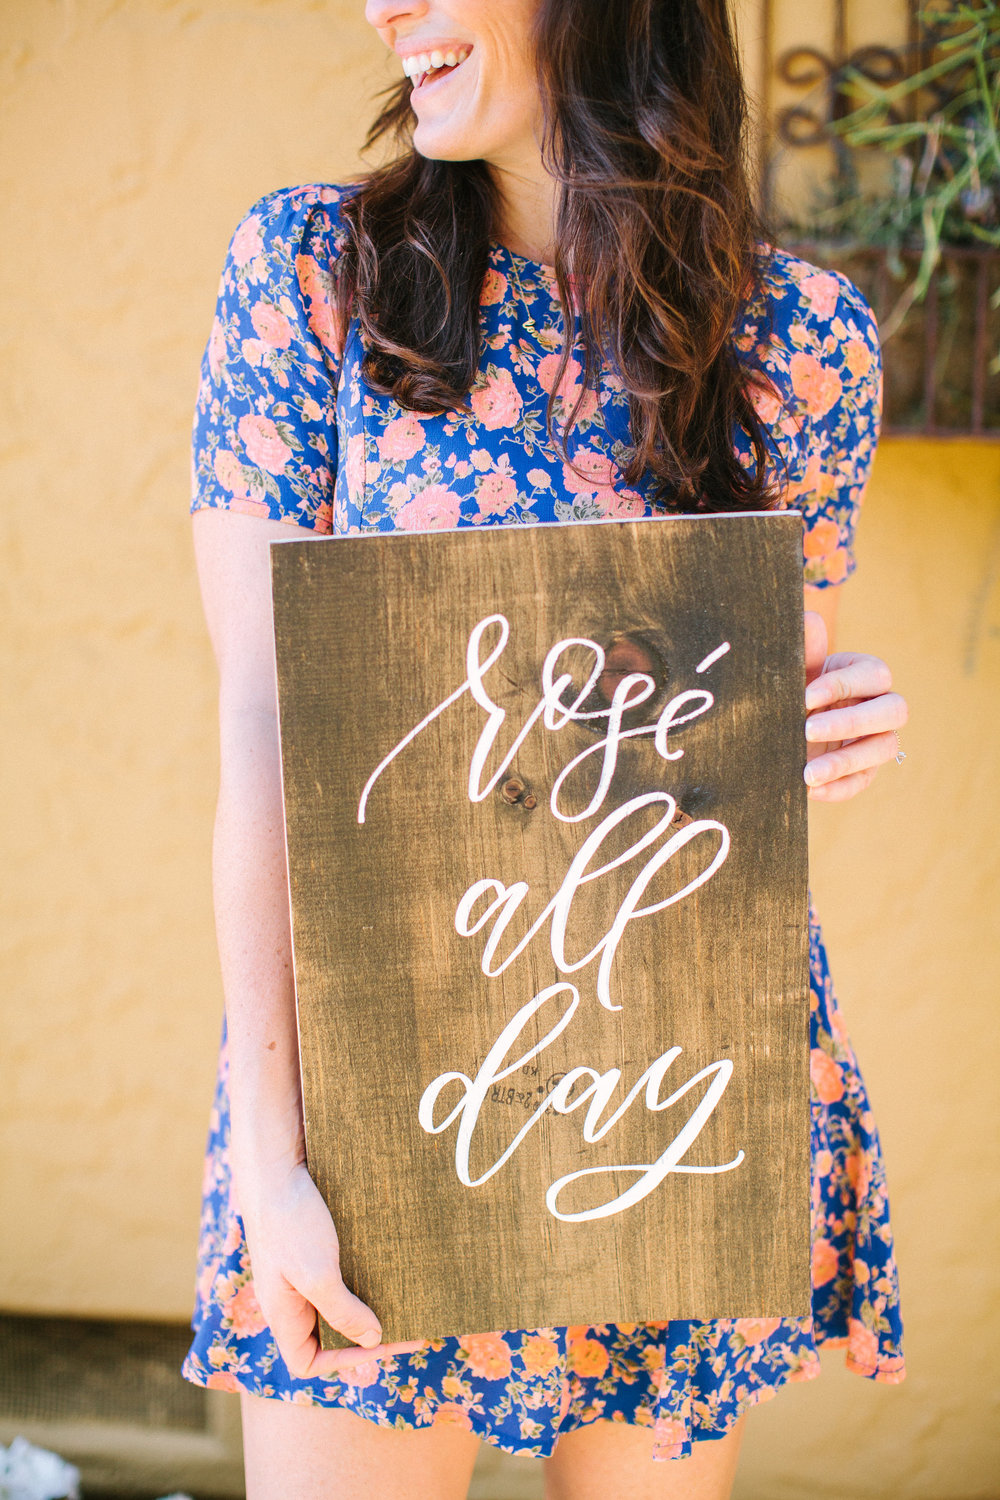 Rosé All Day hand lettered signage